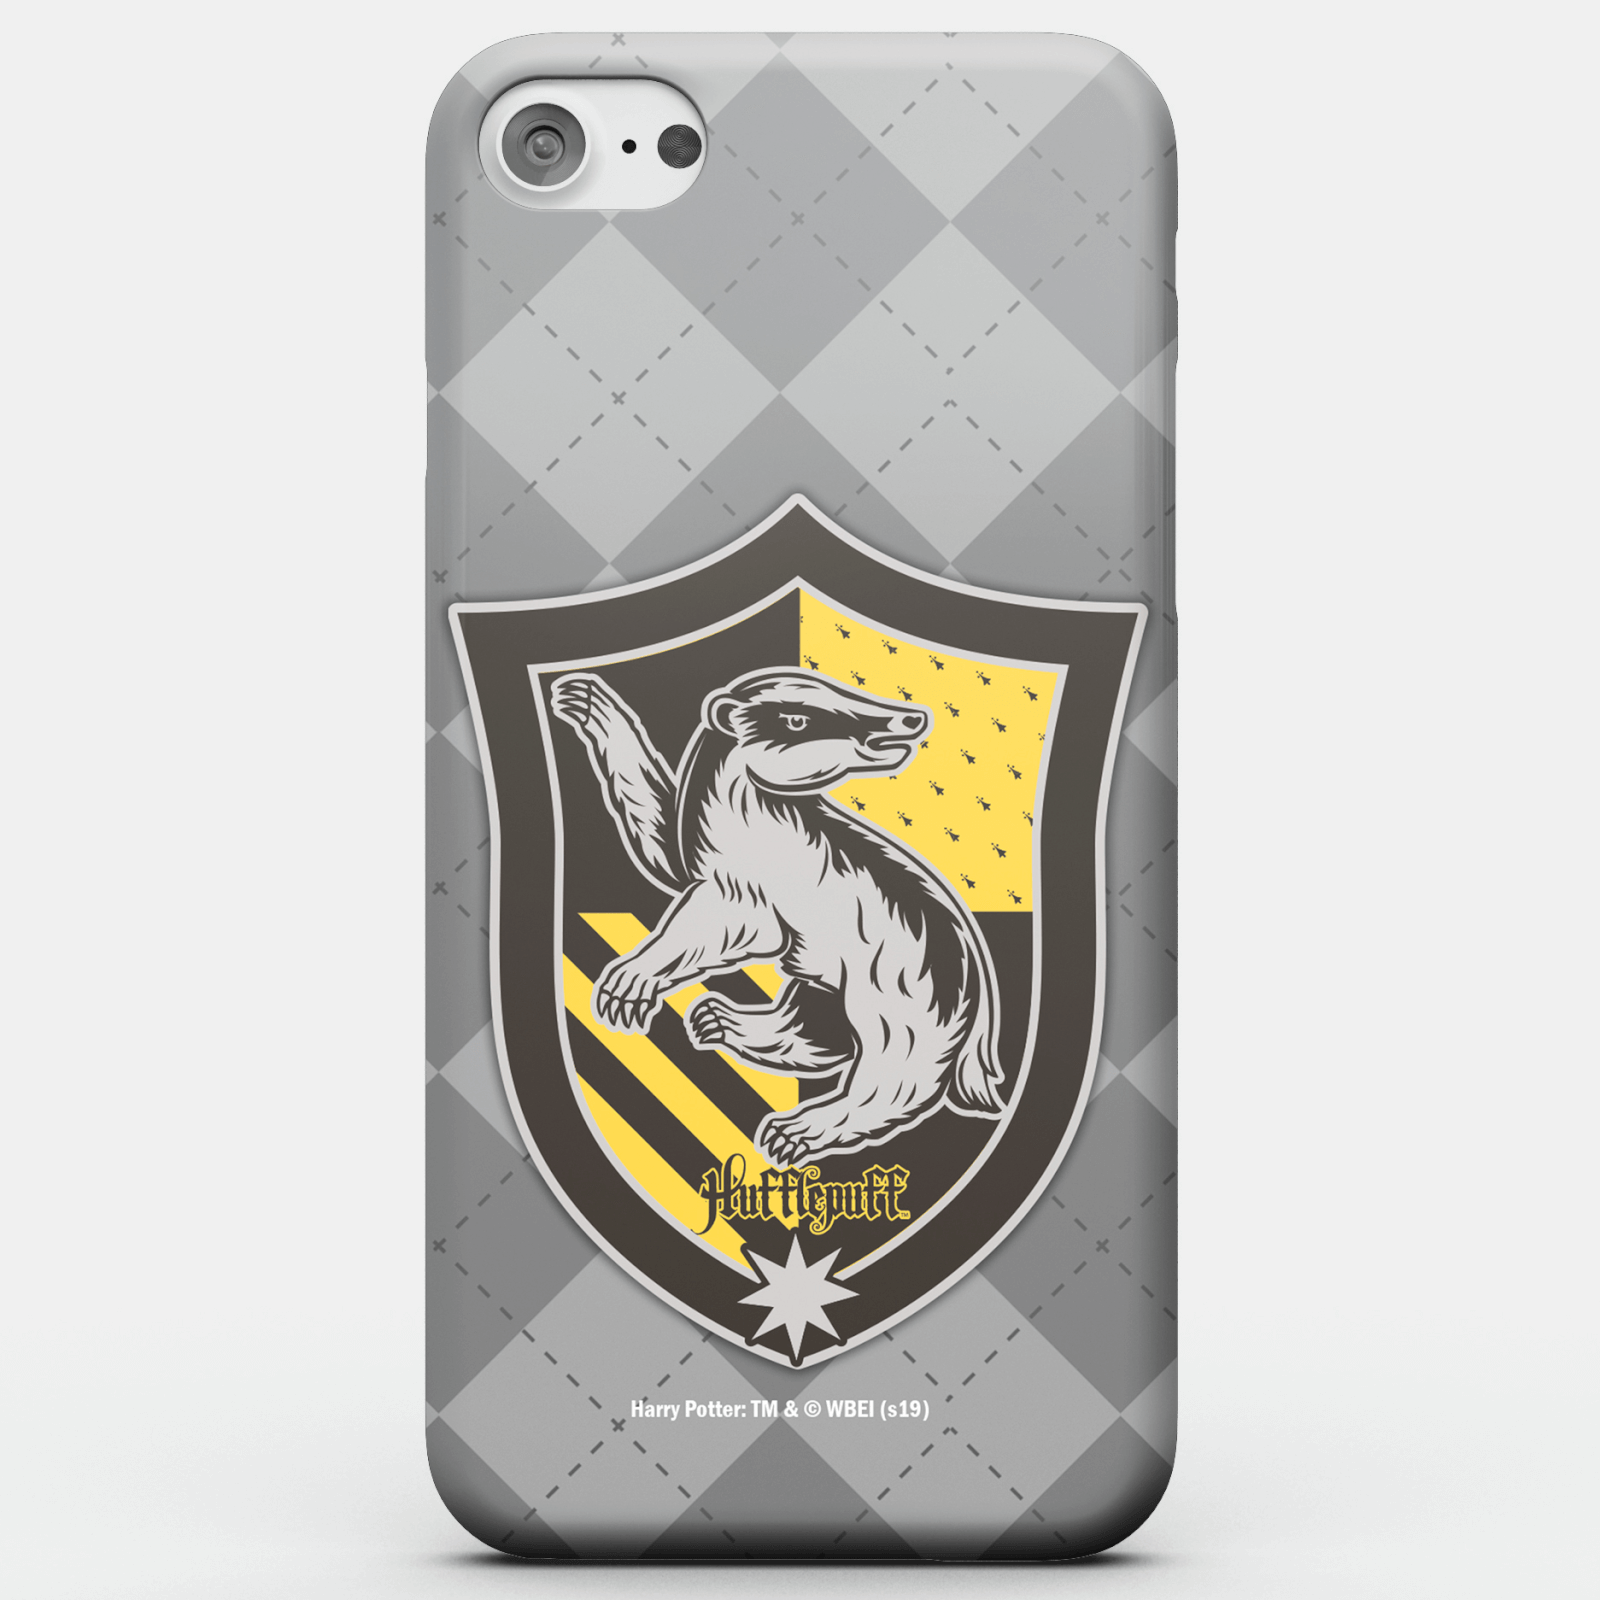 Harry Potter Phonecases Hufflepuff Crest Phone Case for iPhone and Android - iPhone 5C - Carcasa doble capa - Brillante de Harry Potter